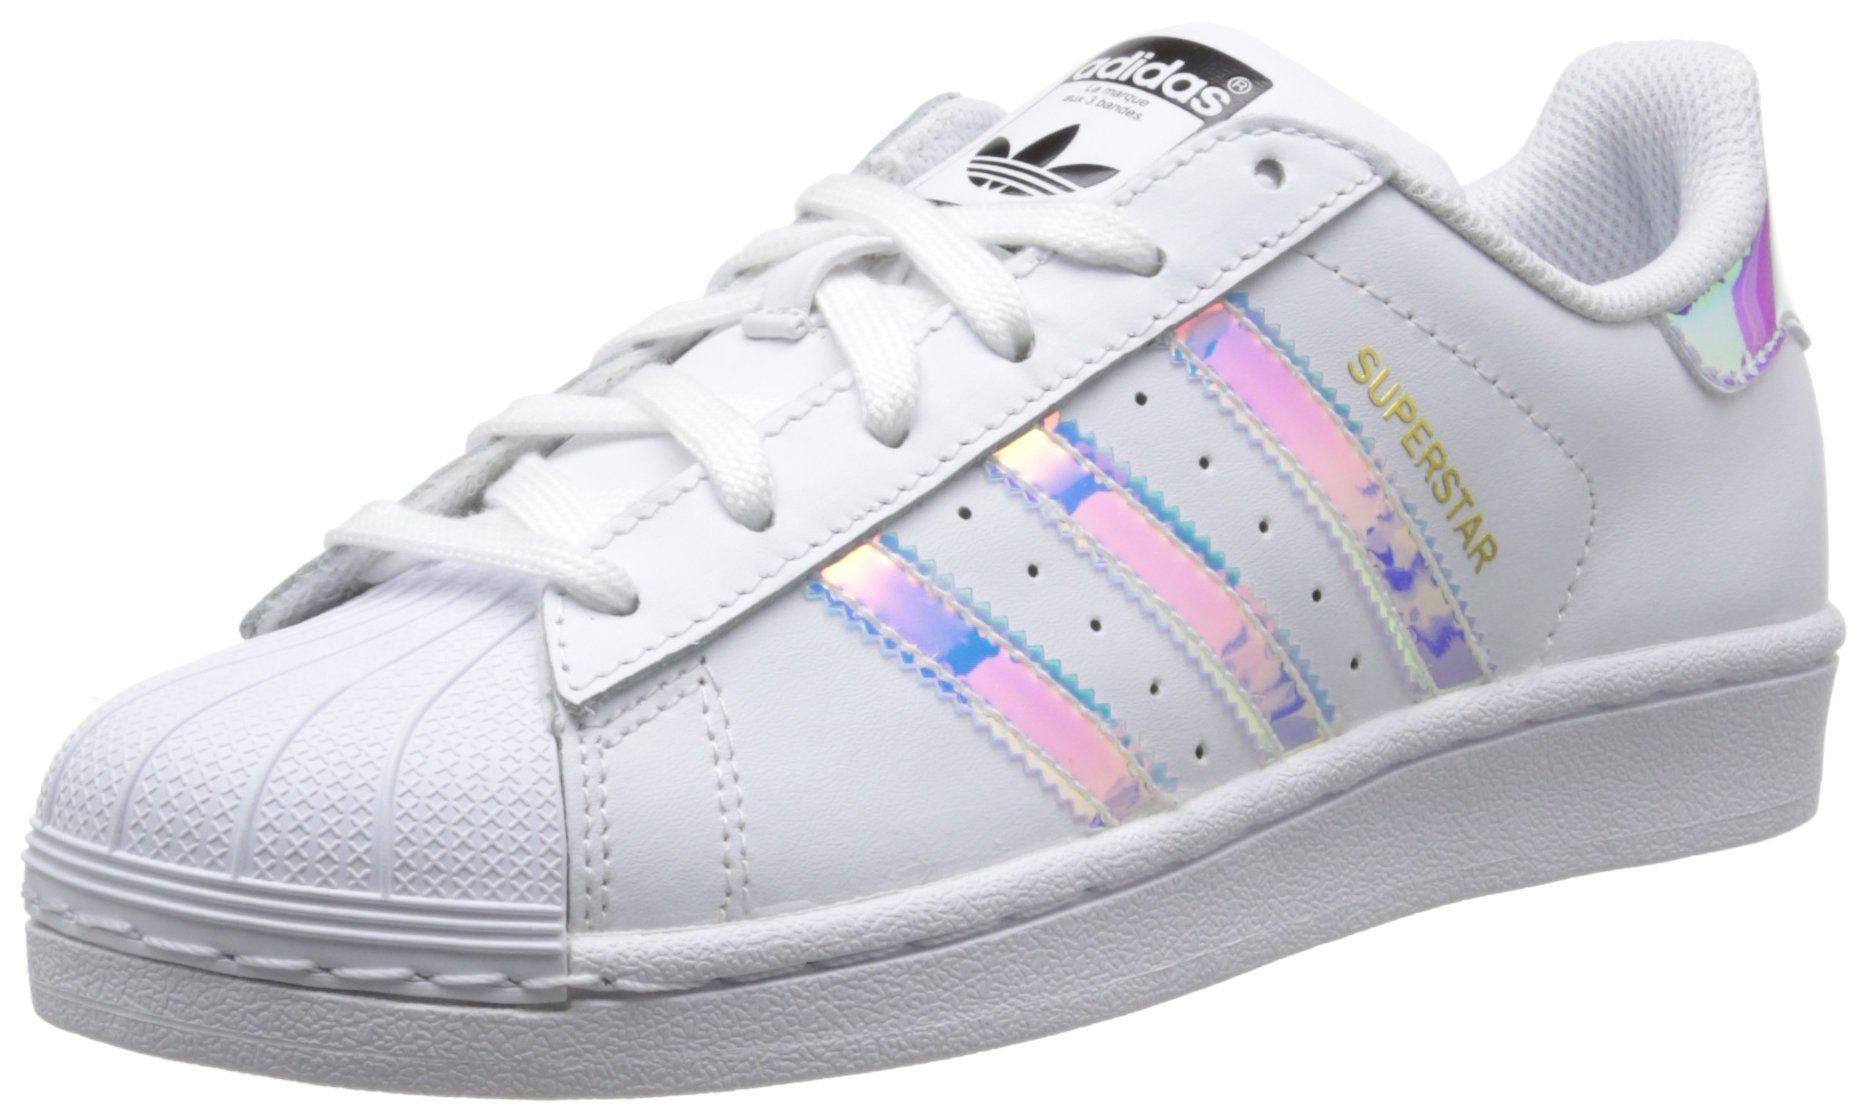 Scarpe Adidas Superstar Colorate Classico Blu Scuro Unisex